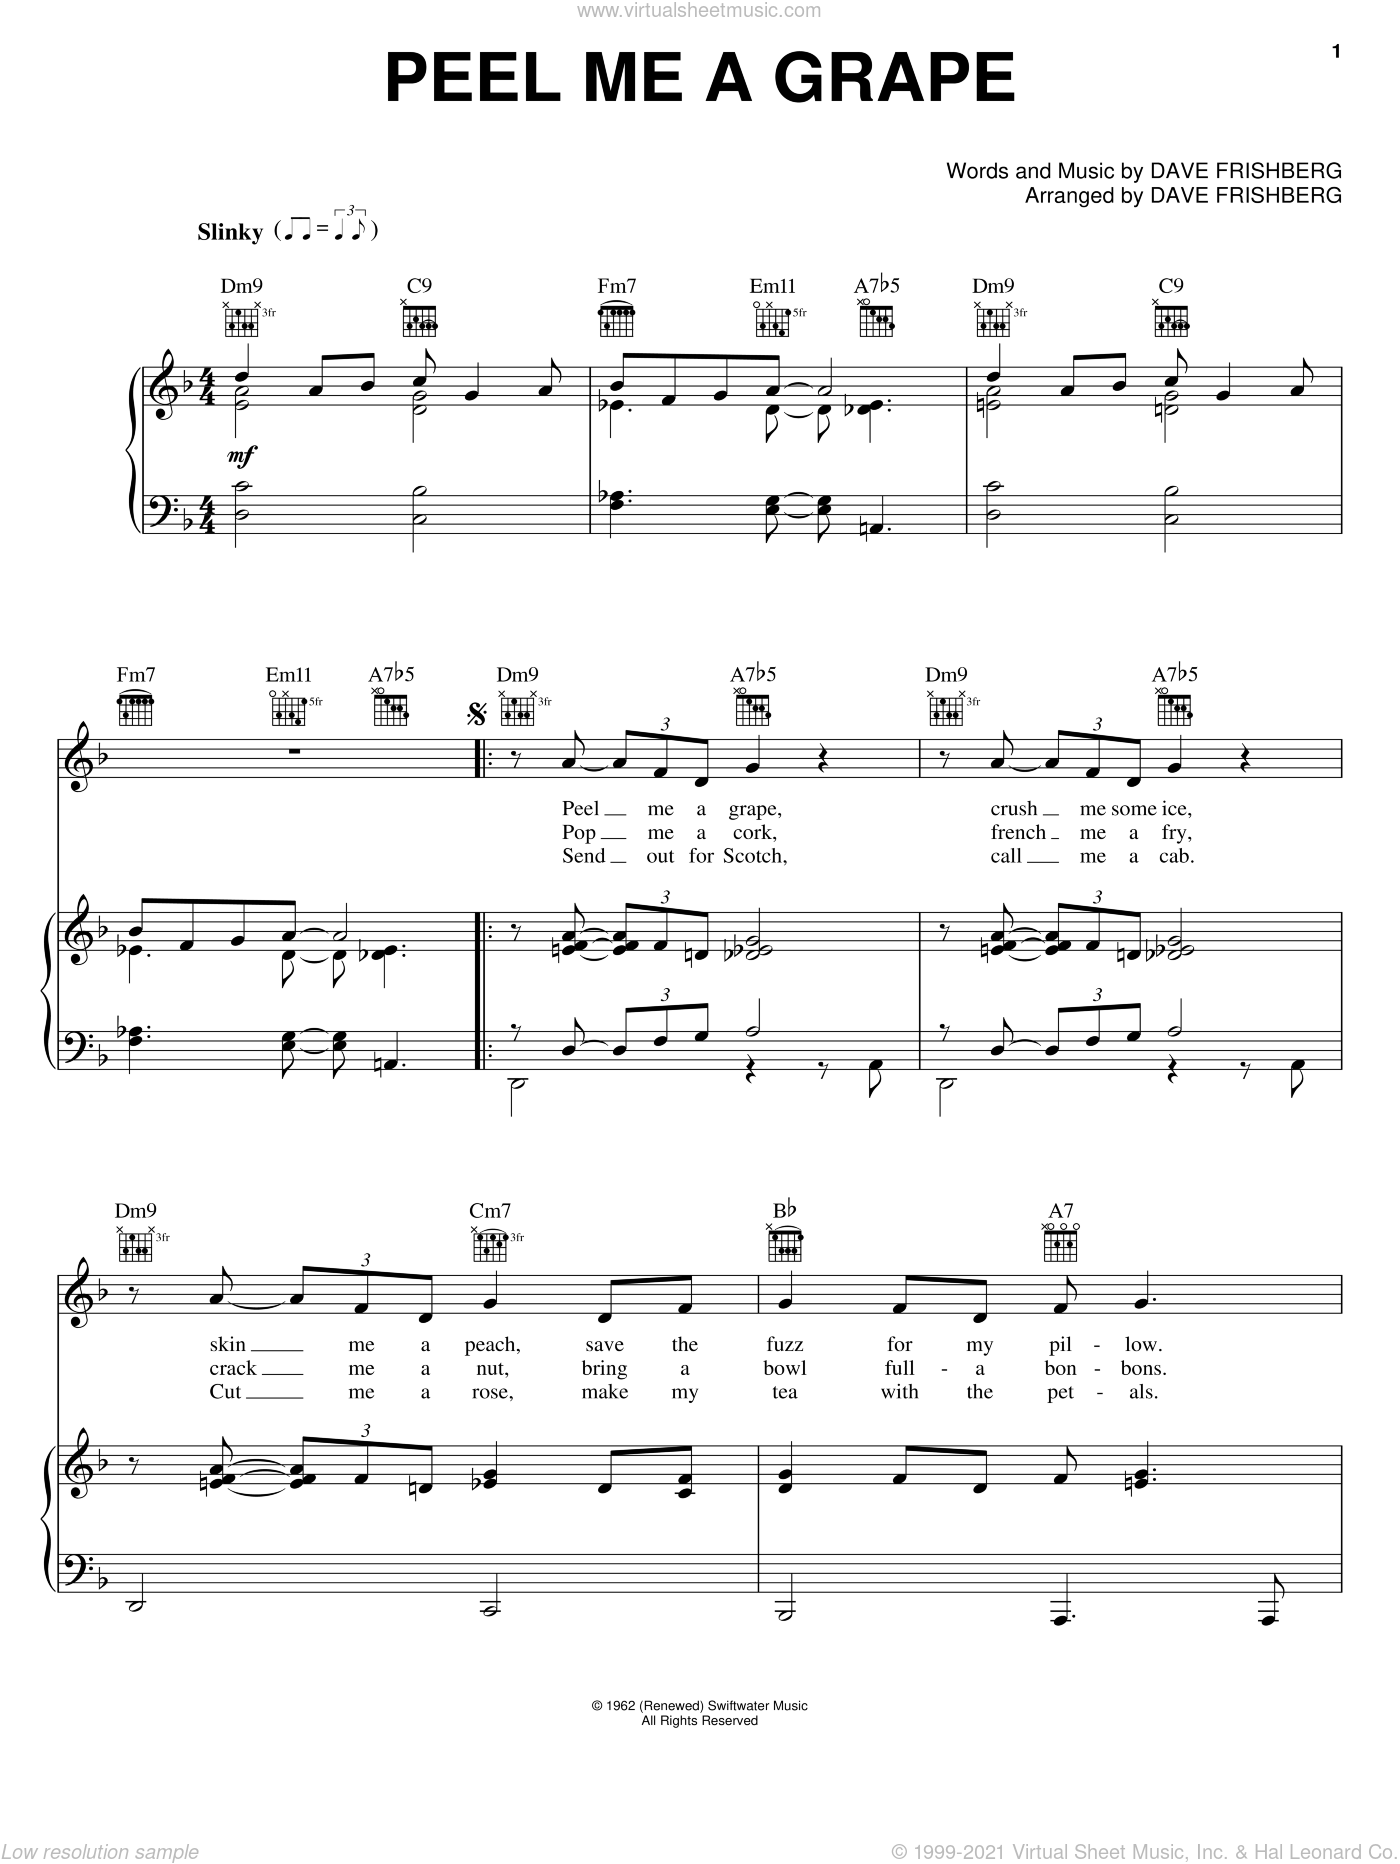 Peel Me A Grape sheet music for voice, piano or guitar by Dave Frishberg and Diana Krall, intermediate skill level